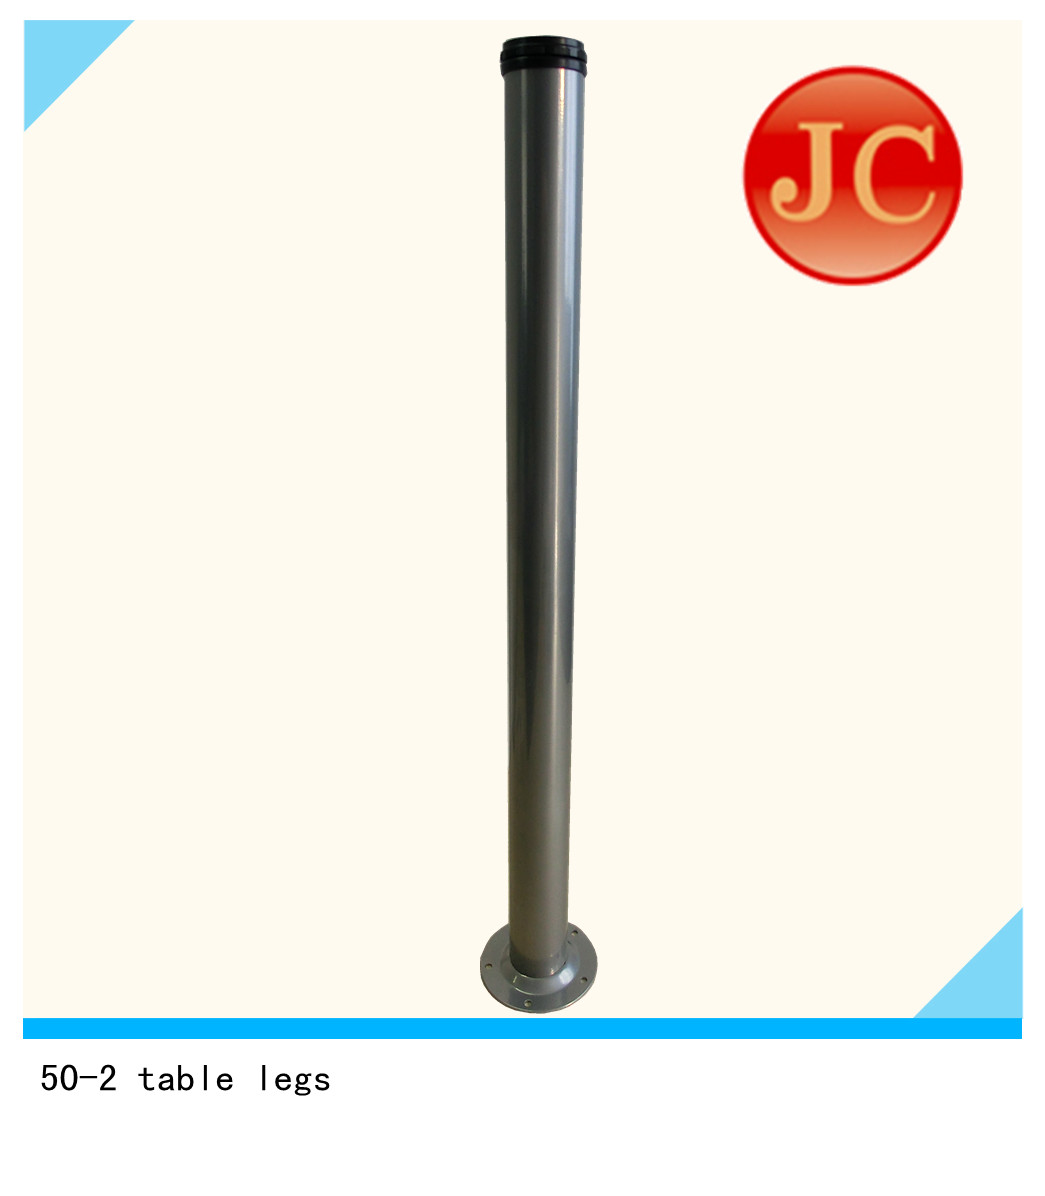 home used adjustable table legs for sale With Professional Technical Support